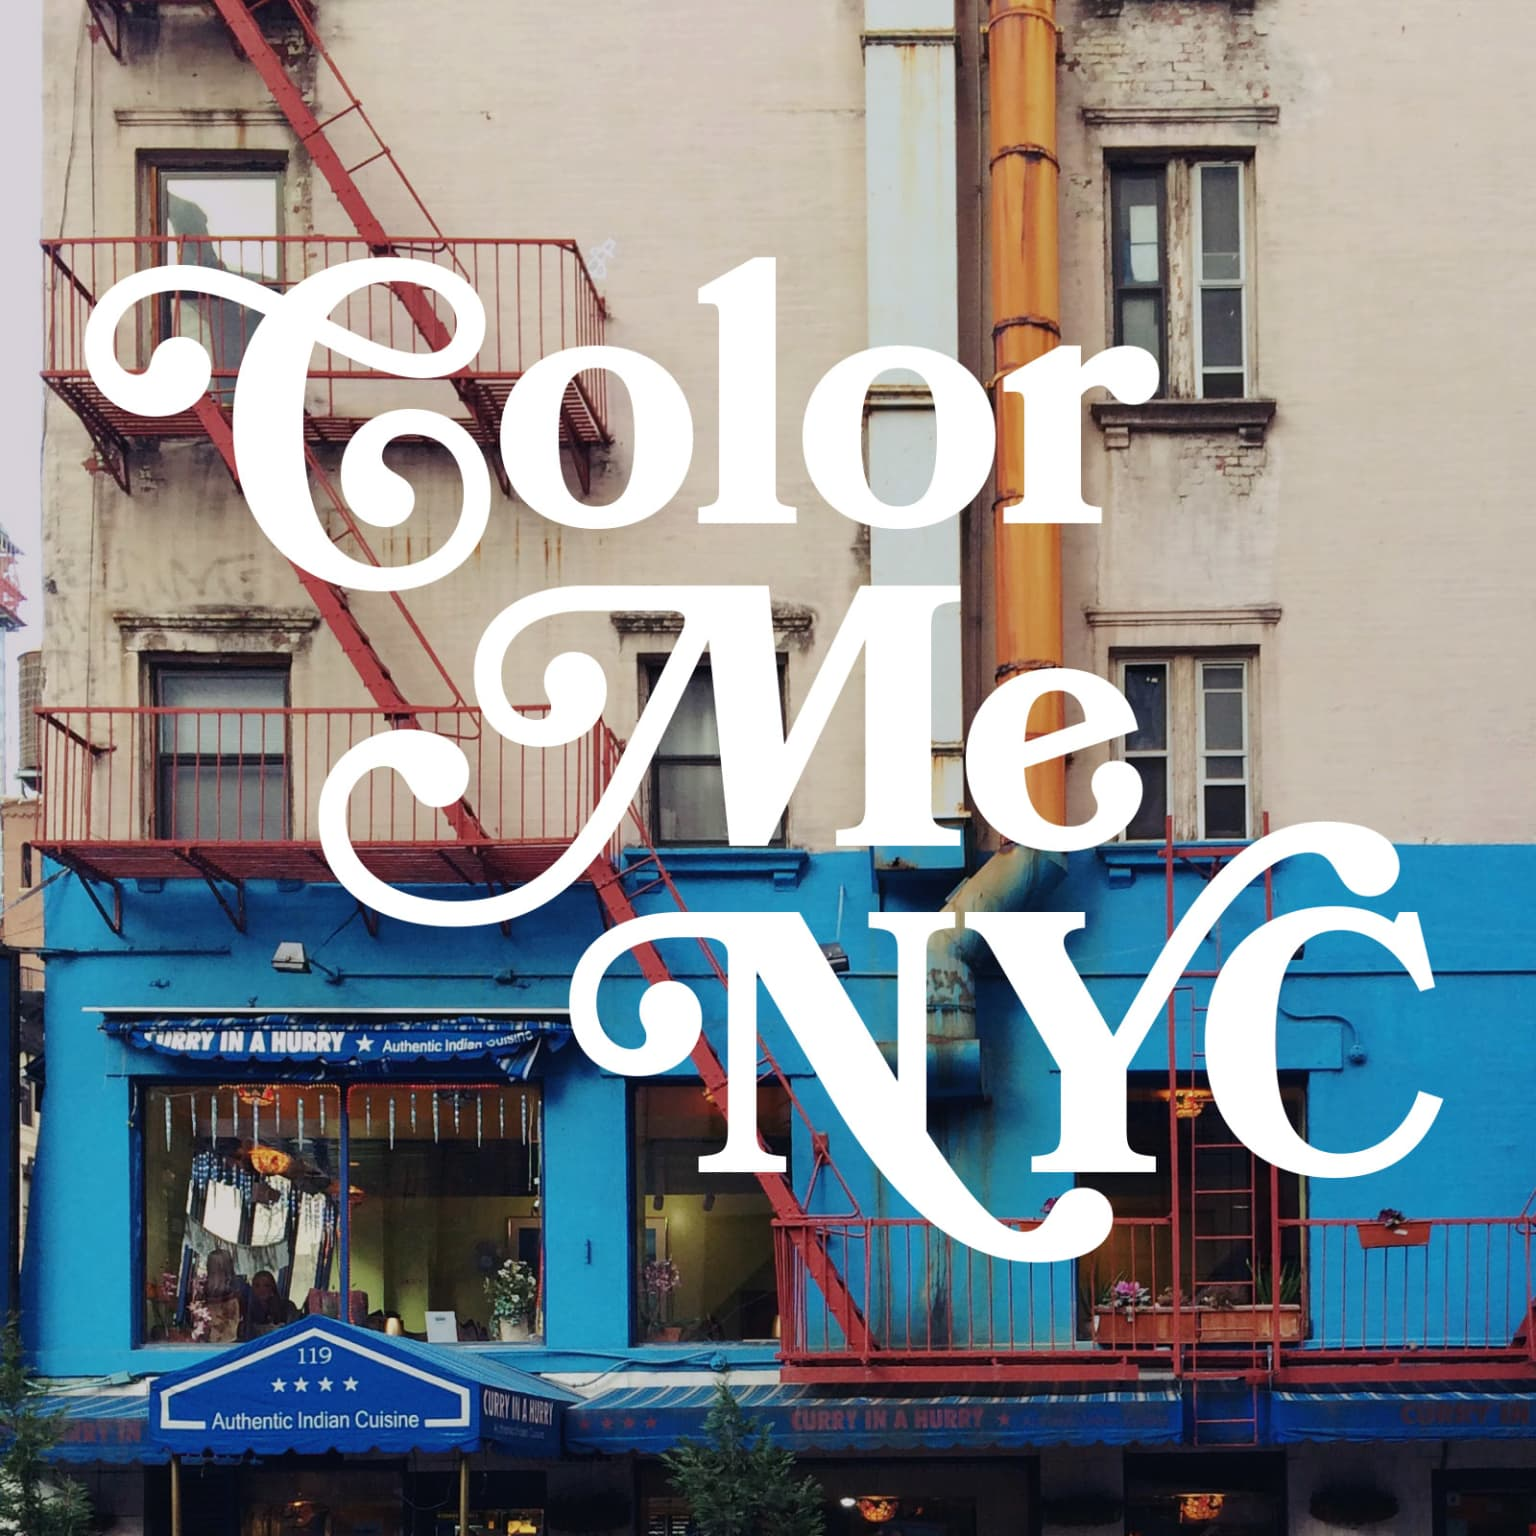 NYC Palettes